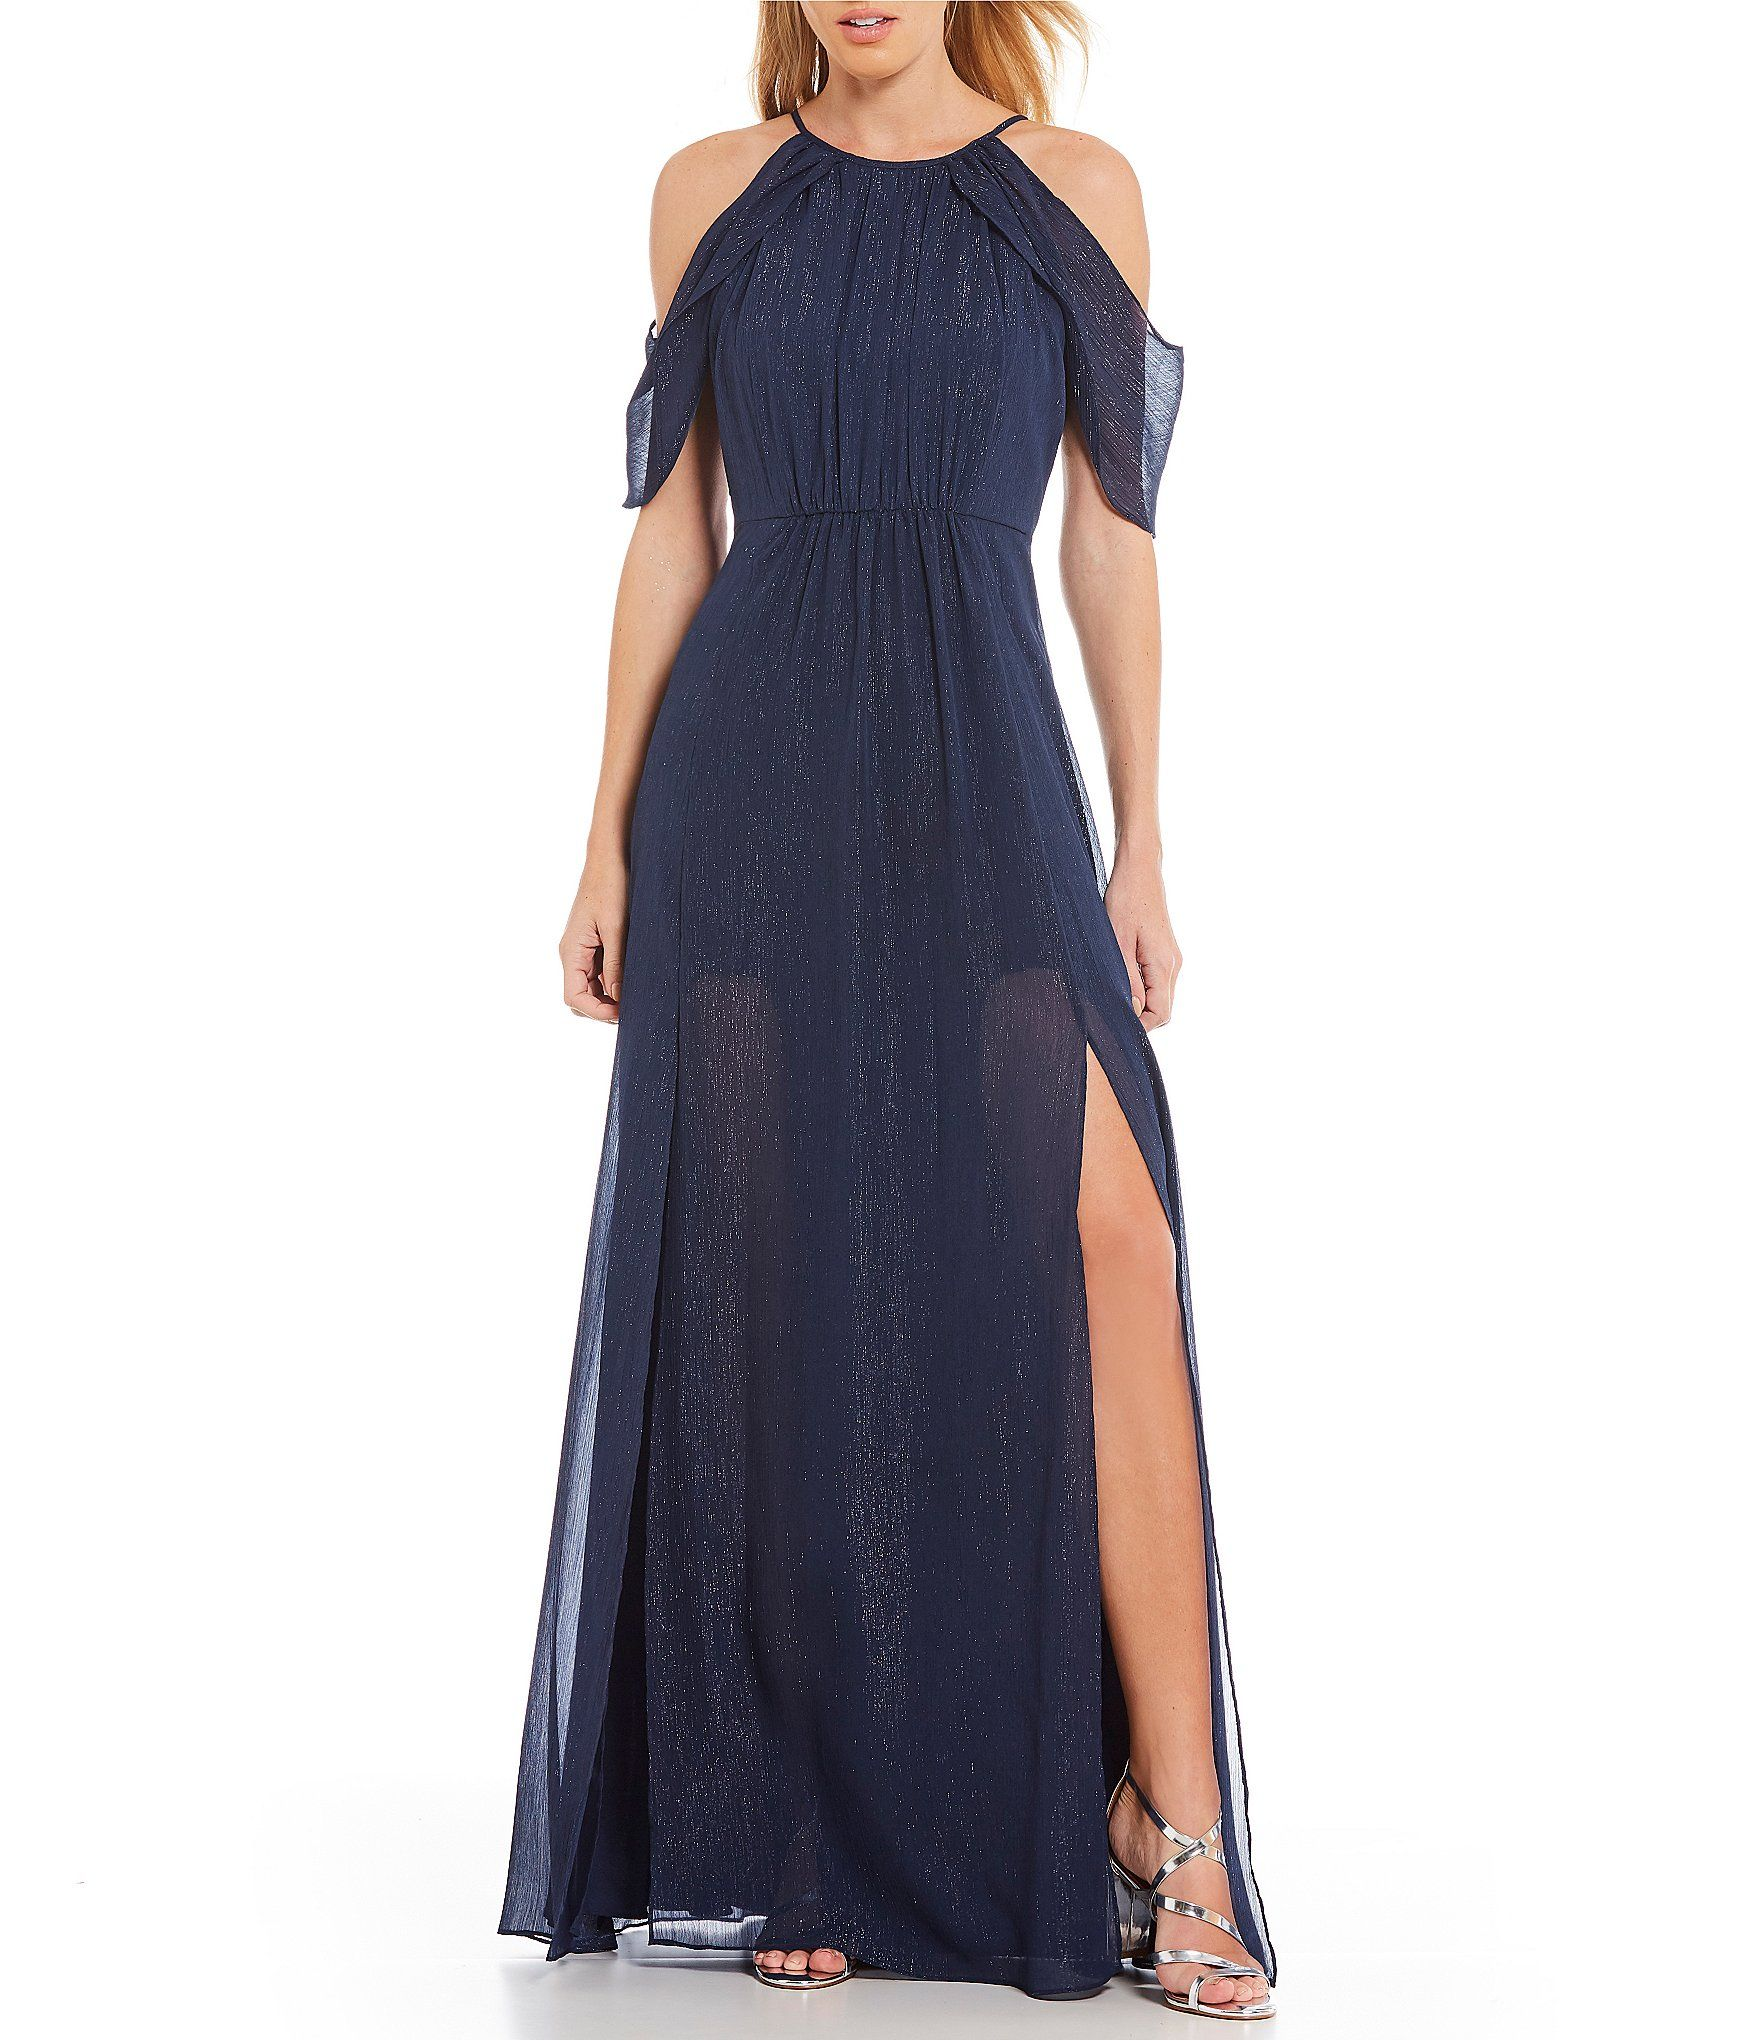 7419224666d H Halston Cold Shoulder Lurex Chiffon Gown  Dillards